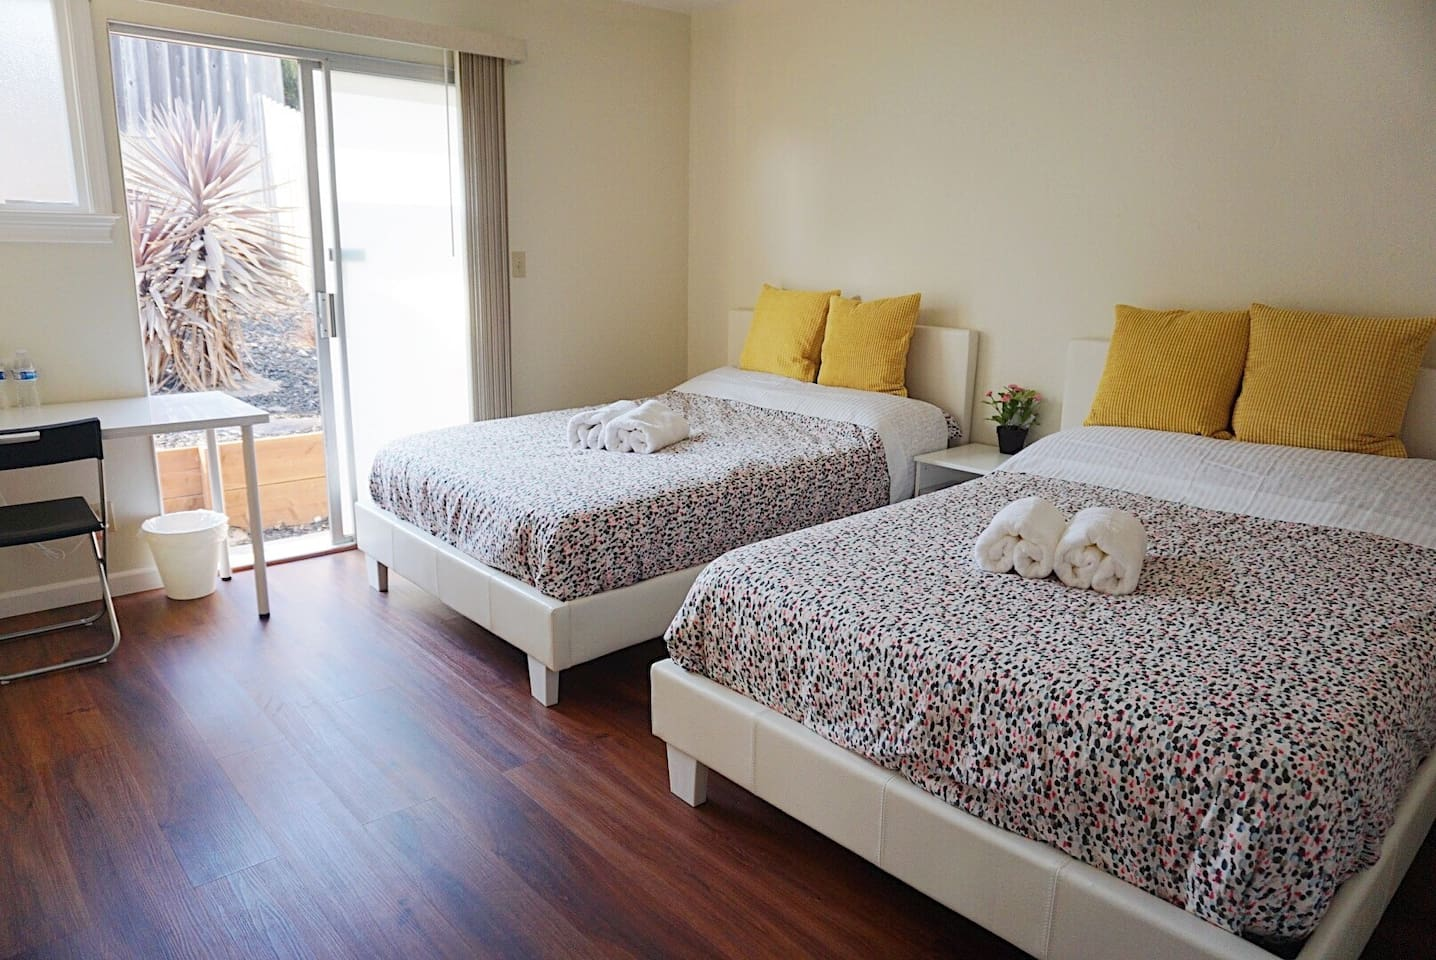 Room A1 - 2 Double Beds with sliding door to backyard